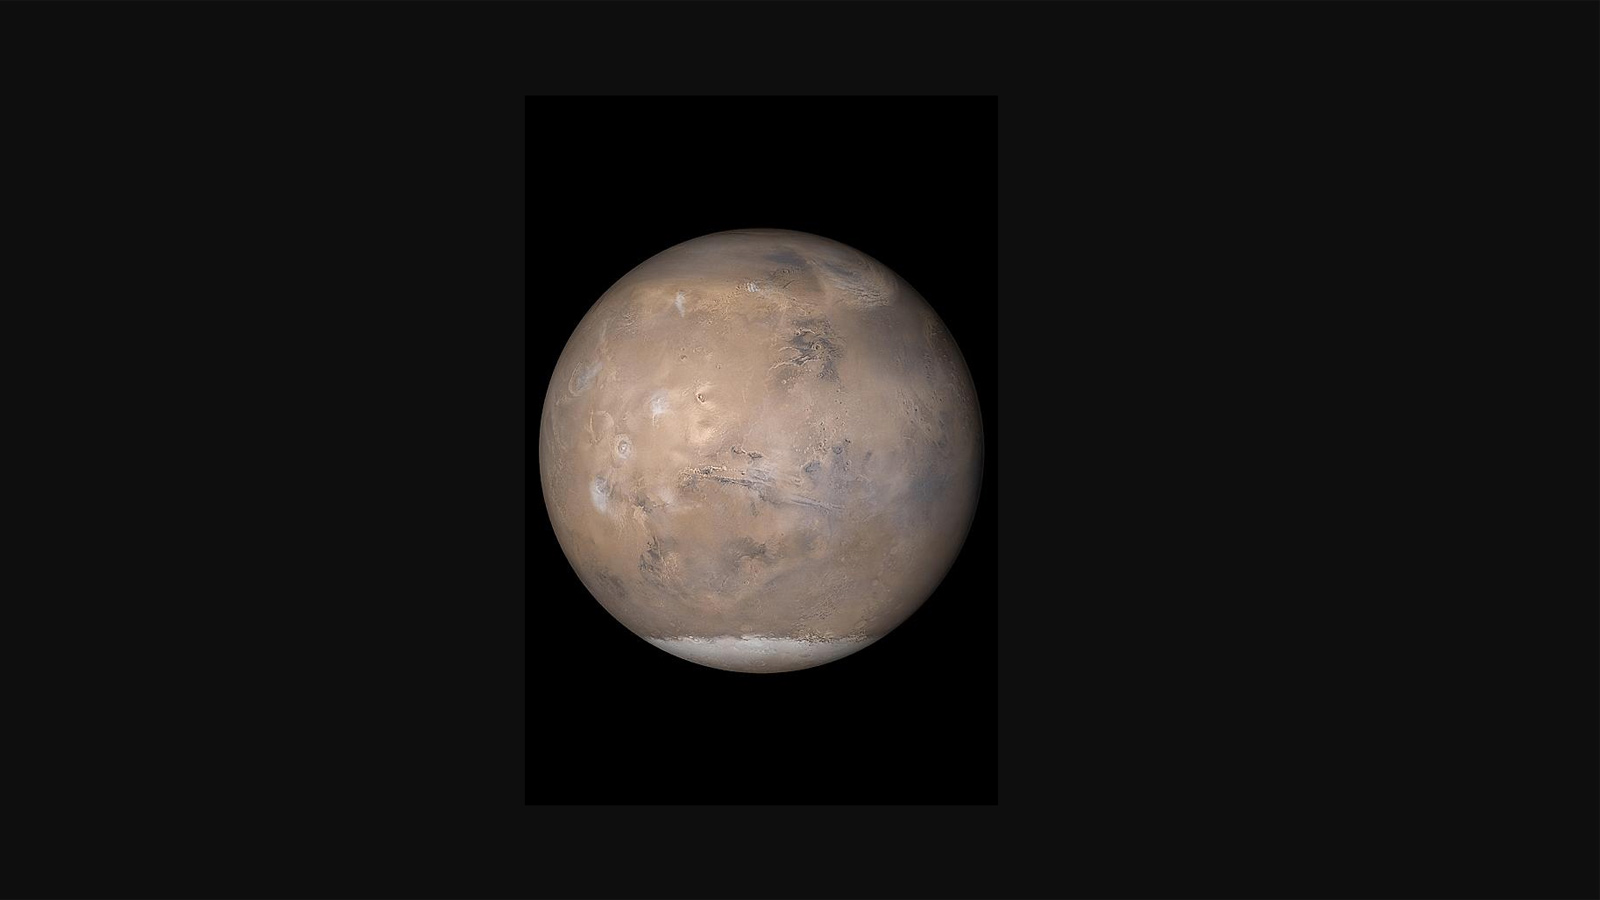 slide 5 - This is an image of Mars, showing the South Pole, where a lake of liquid water may lie beneath the ice.